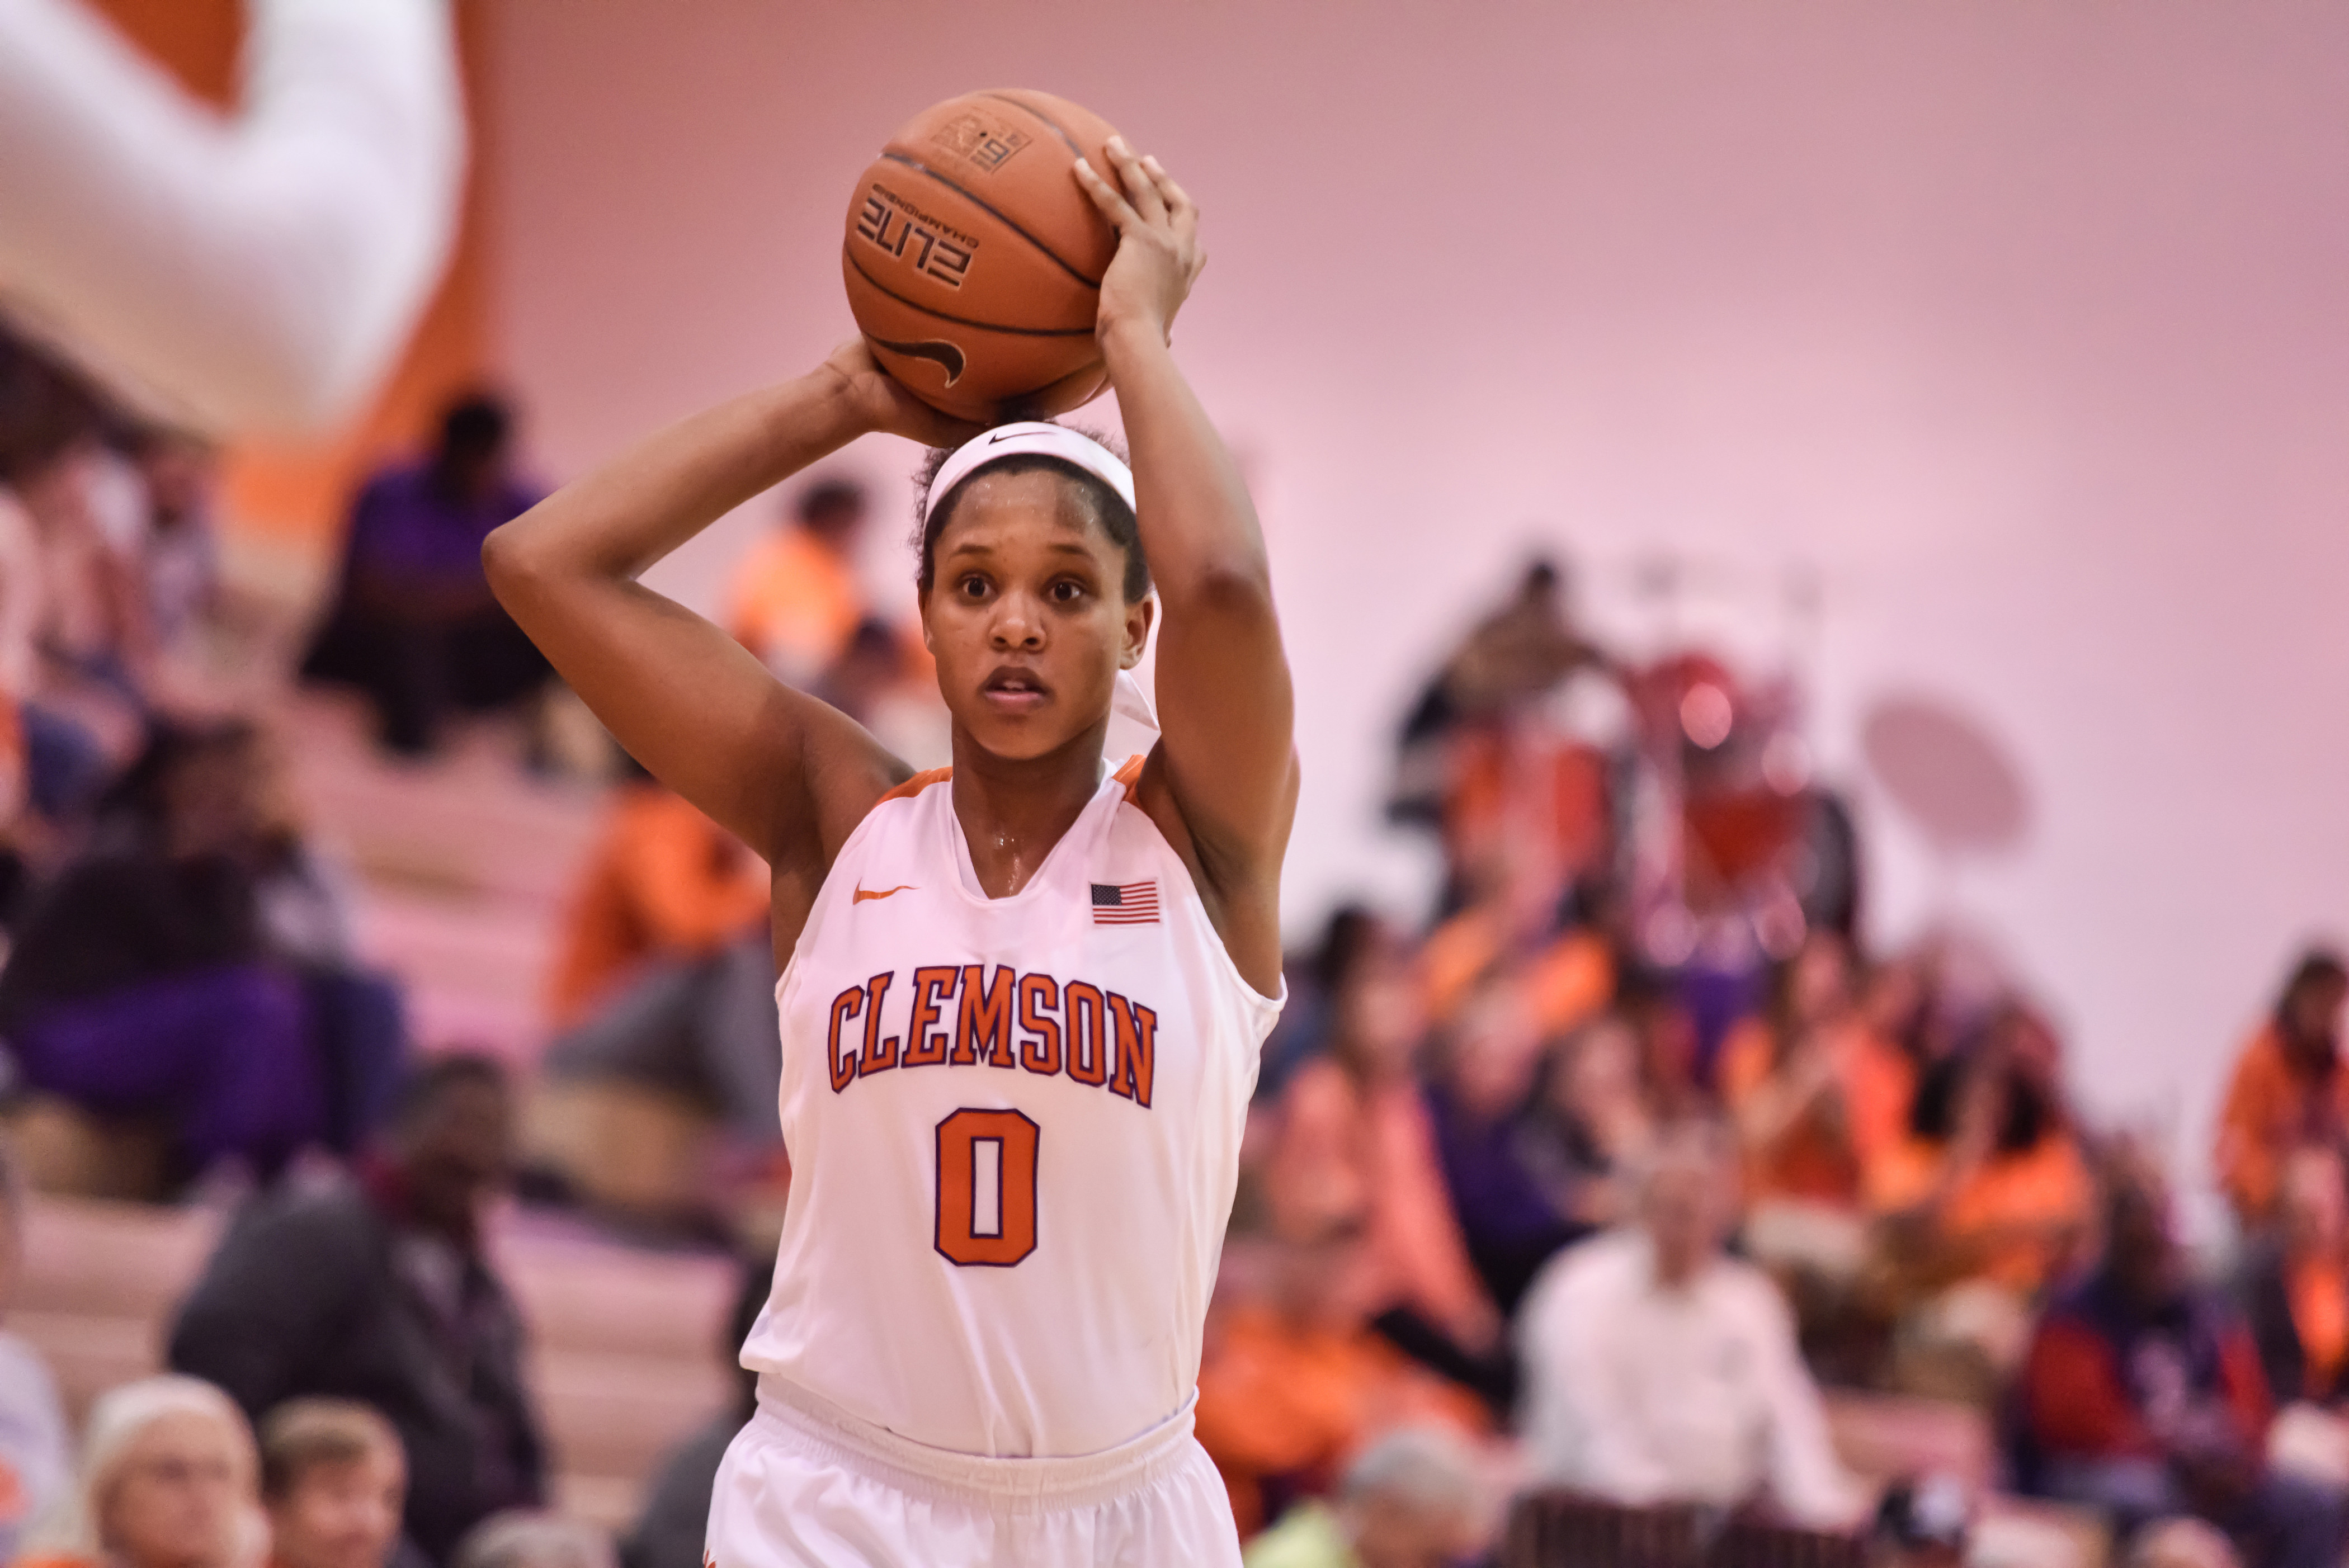 Clemson Falls on the Road at Maine